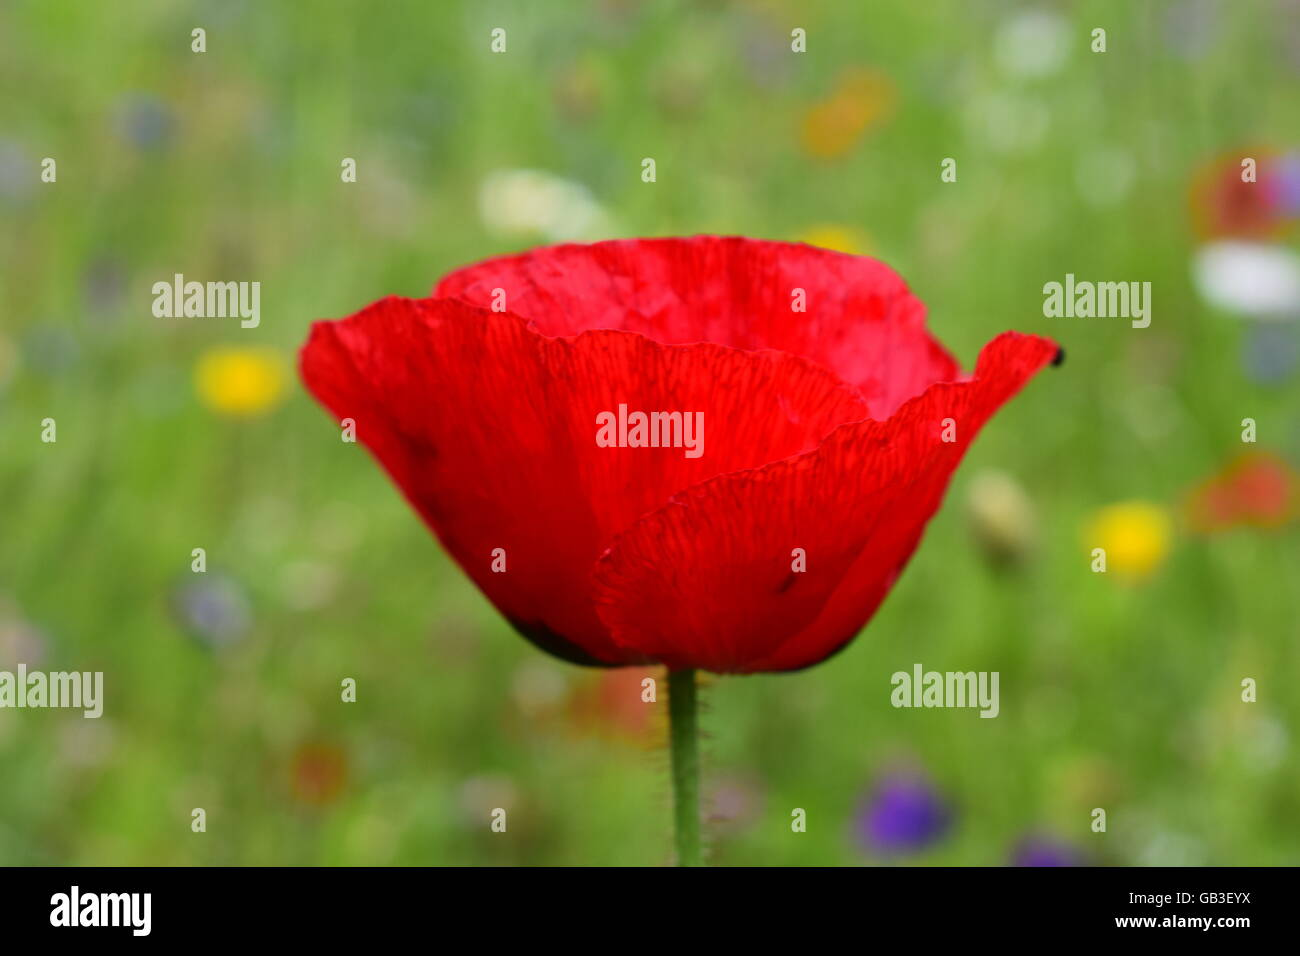 Side View Of Vibrant Poppy Flower Petals Stock Photo 110101038 Alamy